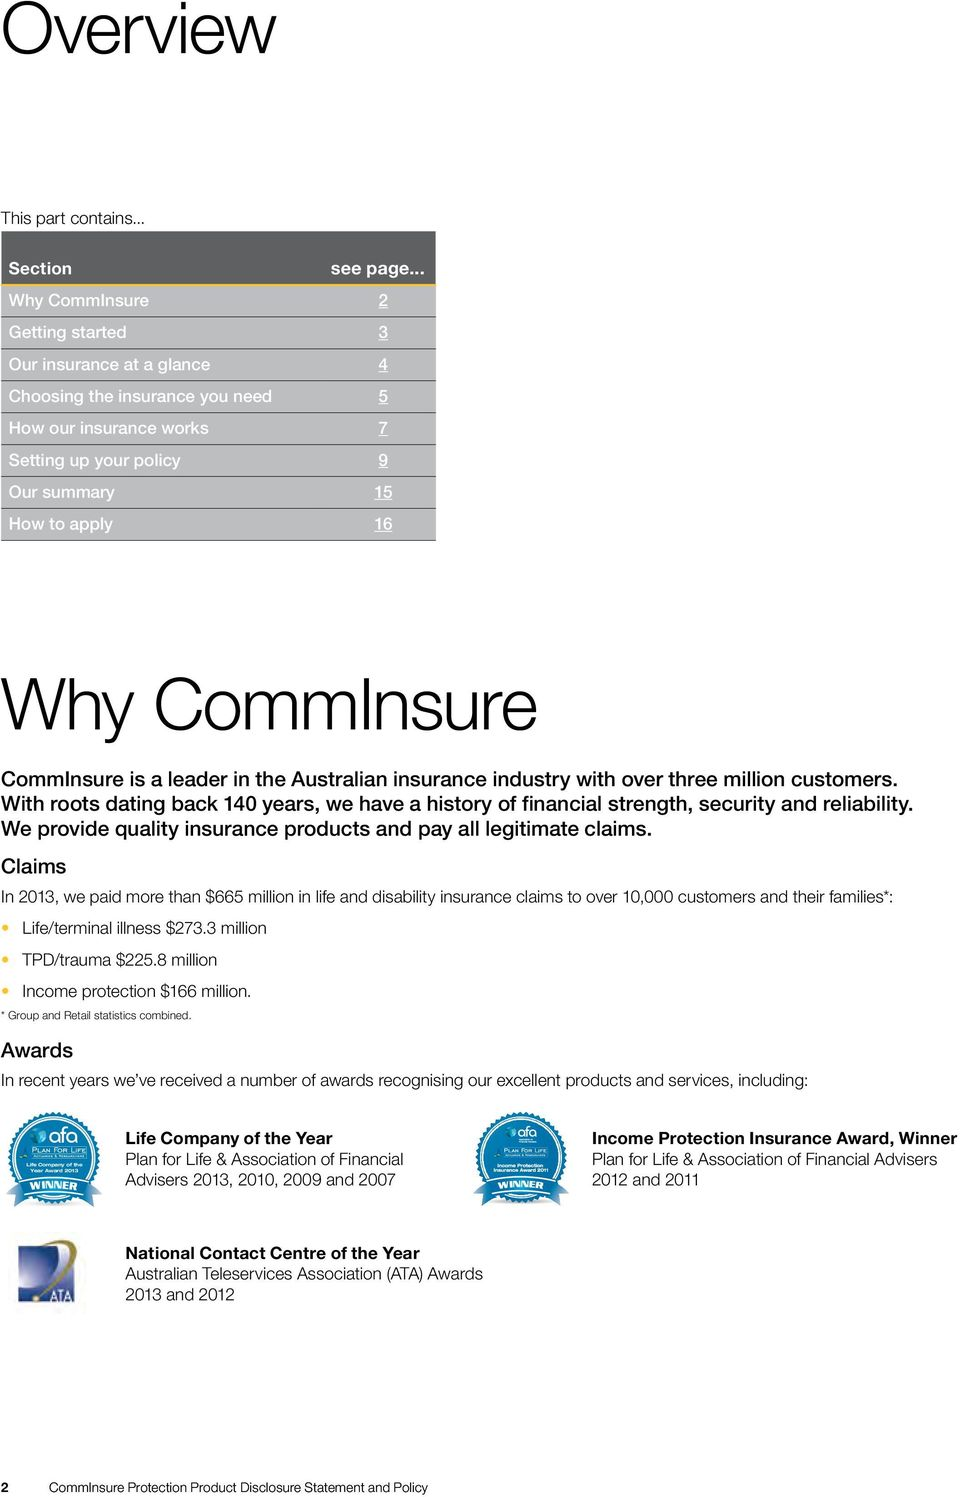 CommInsure is a leader in the Australian insurance industry with over three million customers. With roots dating back 140 years, we have a history of financial strength, security and reliability.